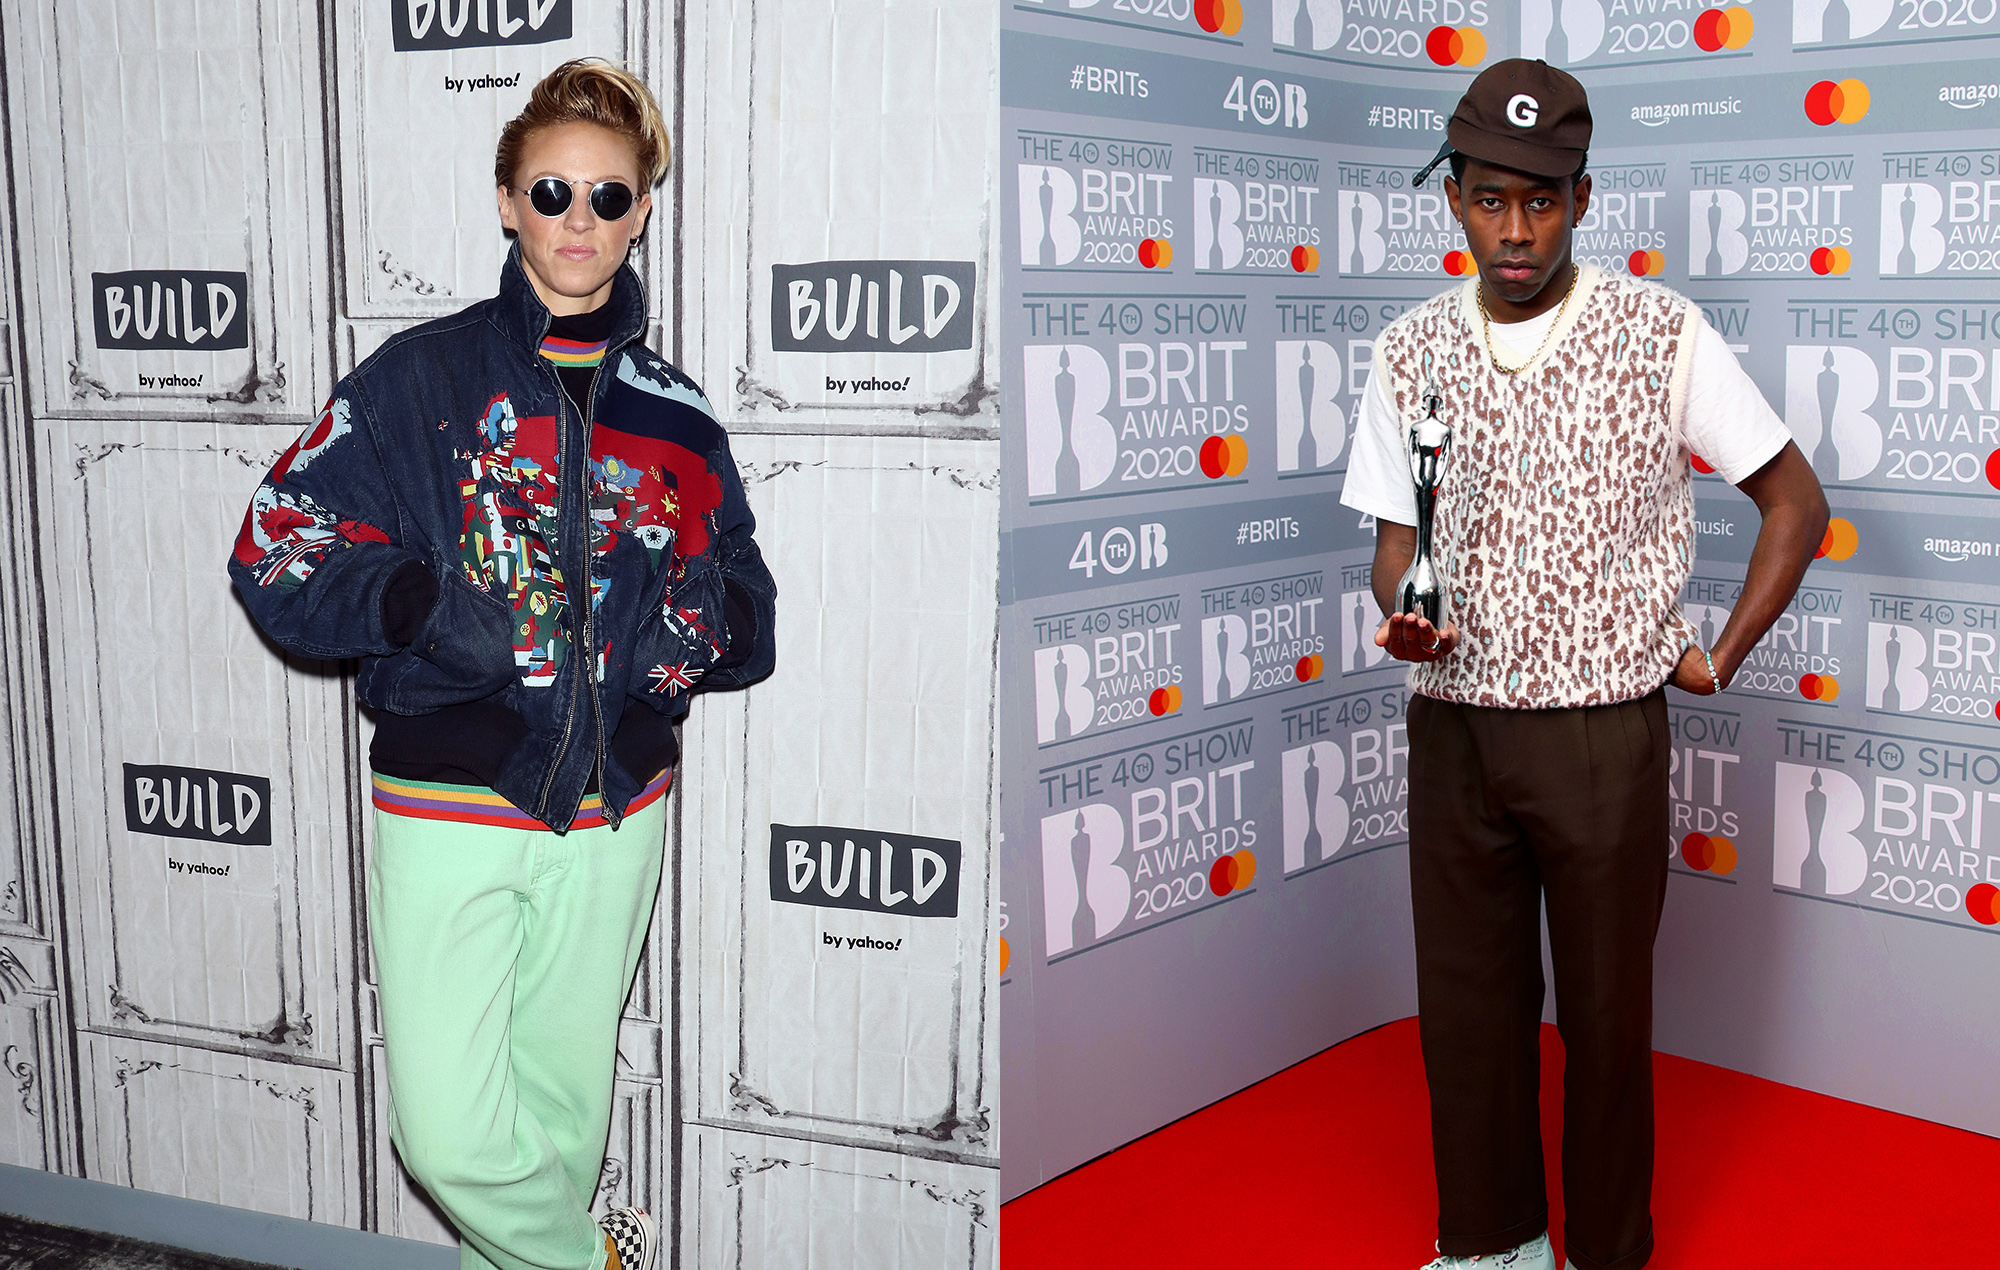 La Roux teases 'Automatic Driver' remix by Tyler, The Creator - EpicNews